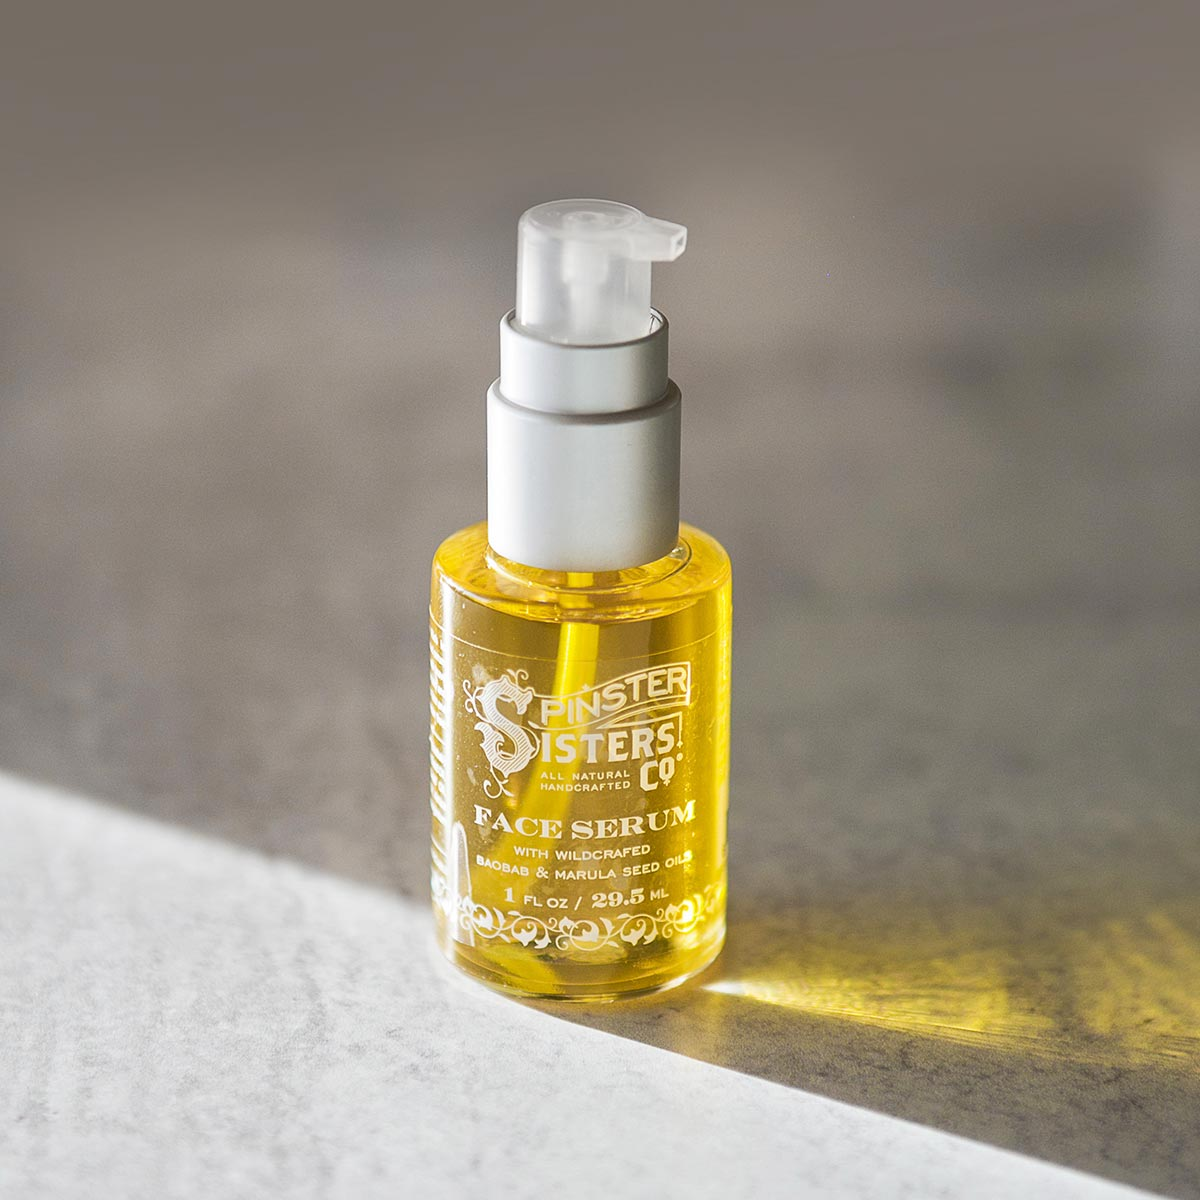 Bright yellow face serum in clear bottle on table